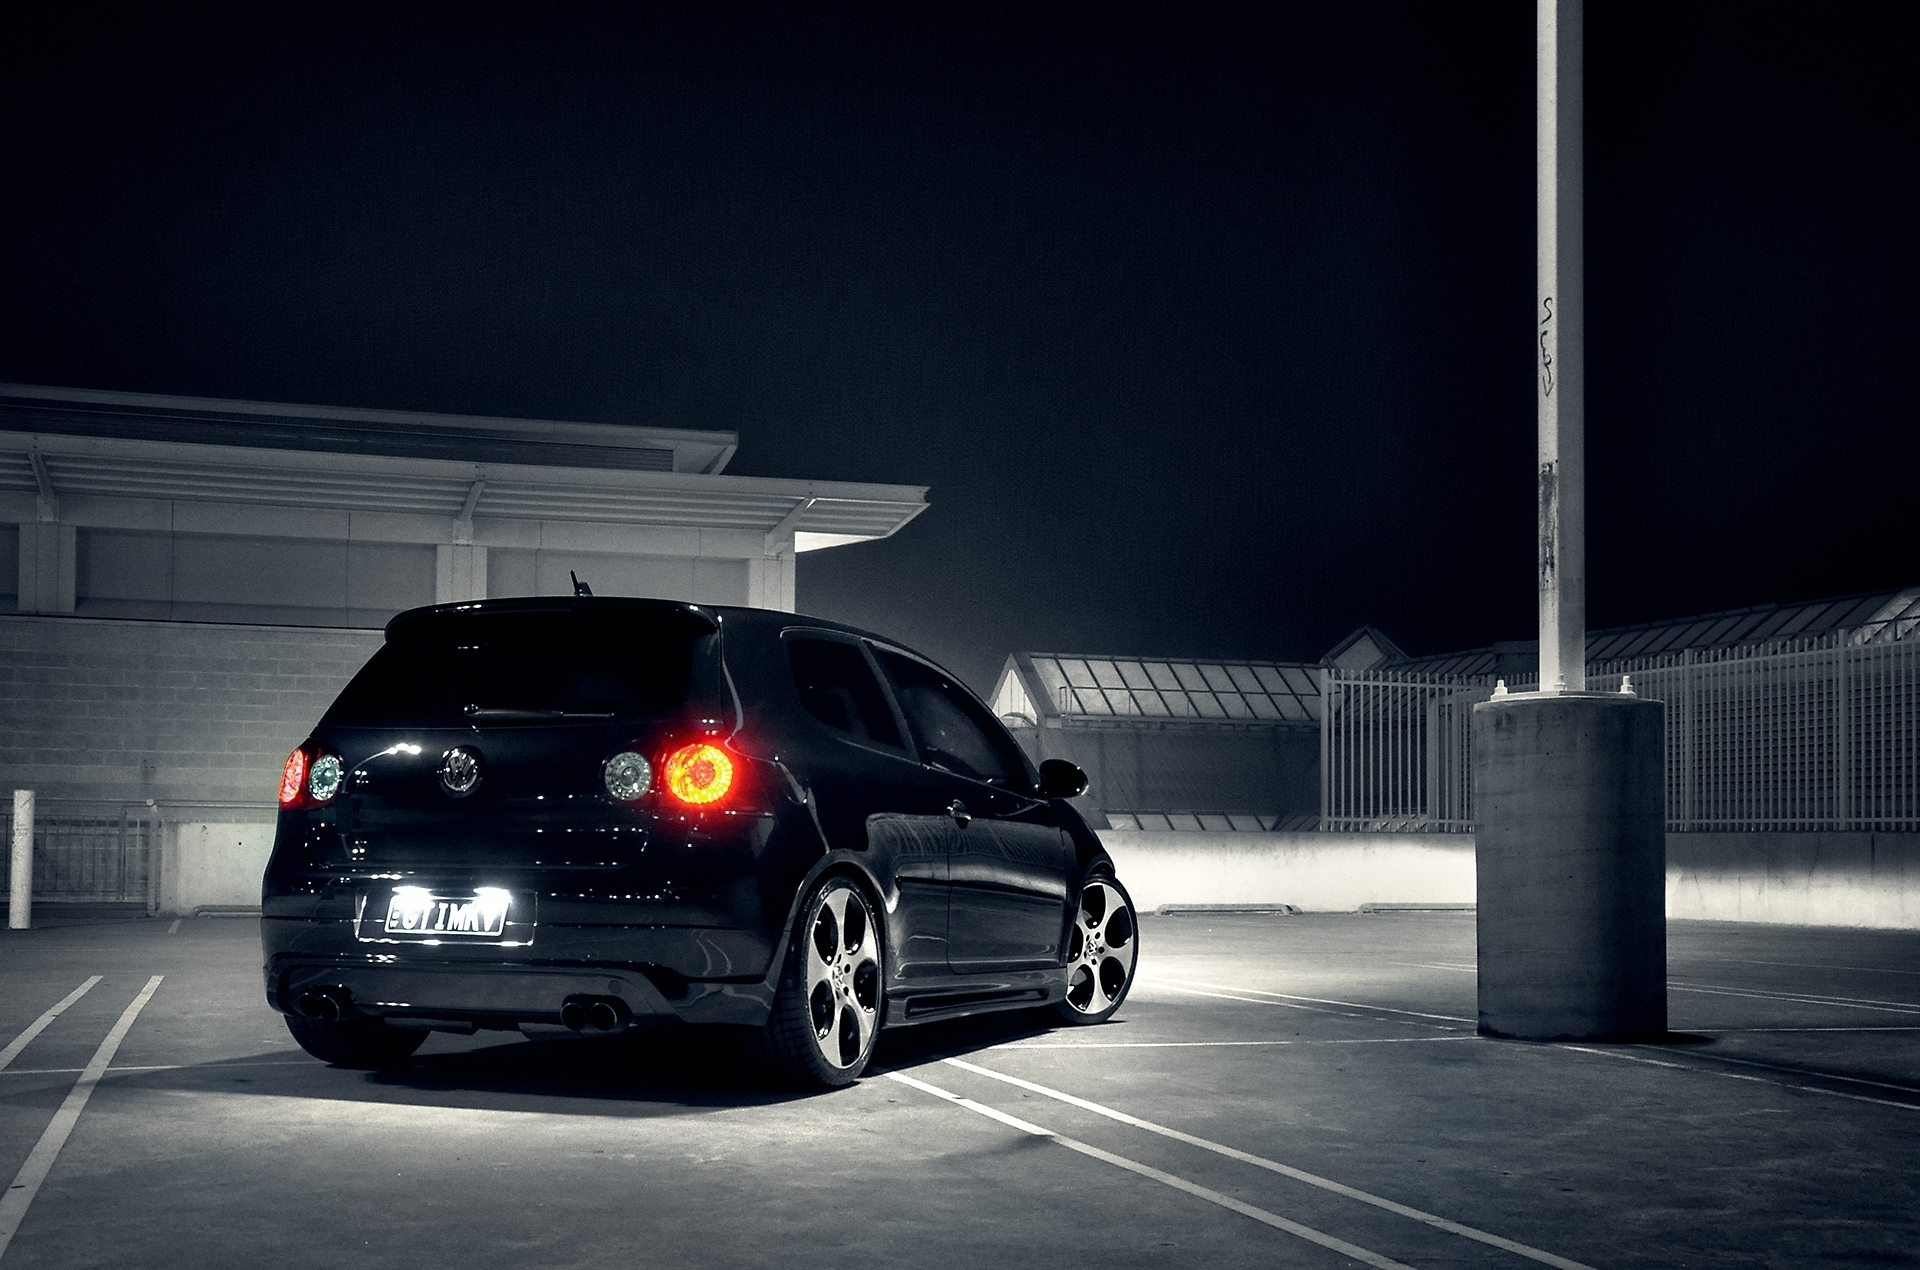 Volkswagen Full HD Wallpaper And Background Image